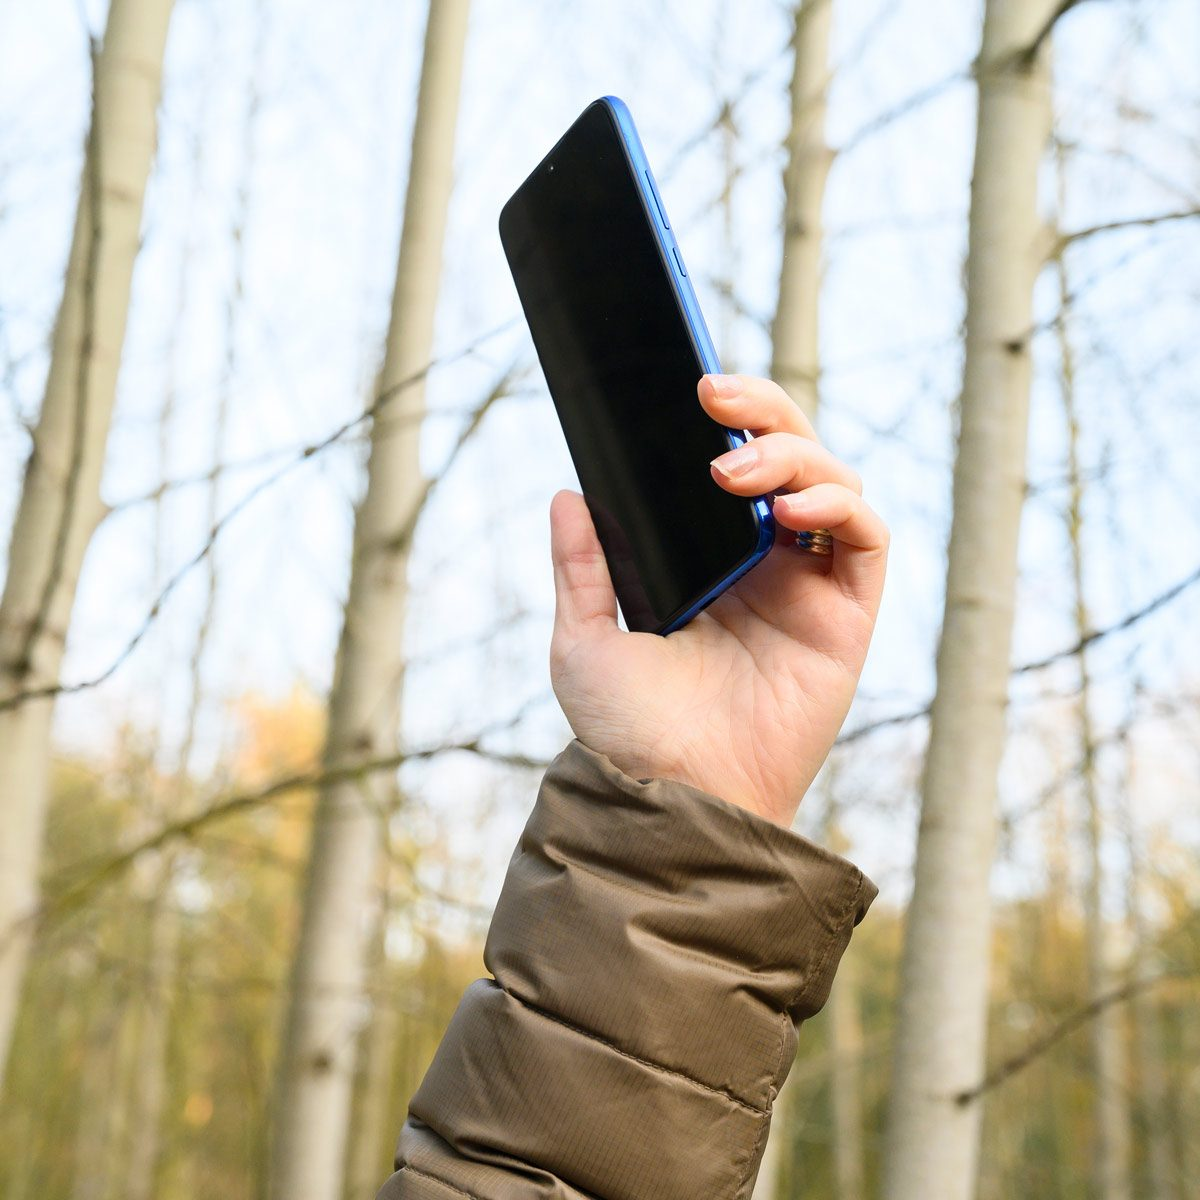 Close up of woman hand holding a the cell phone in the forest cell phone signal